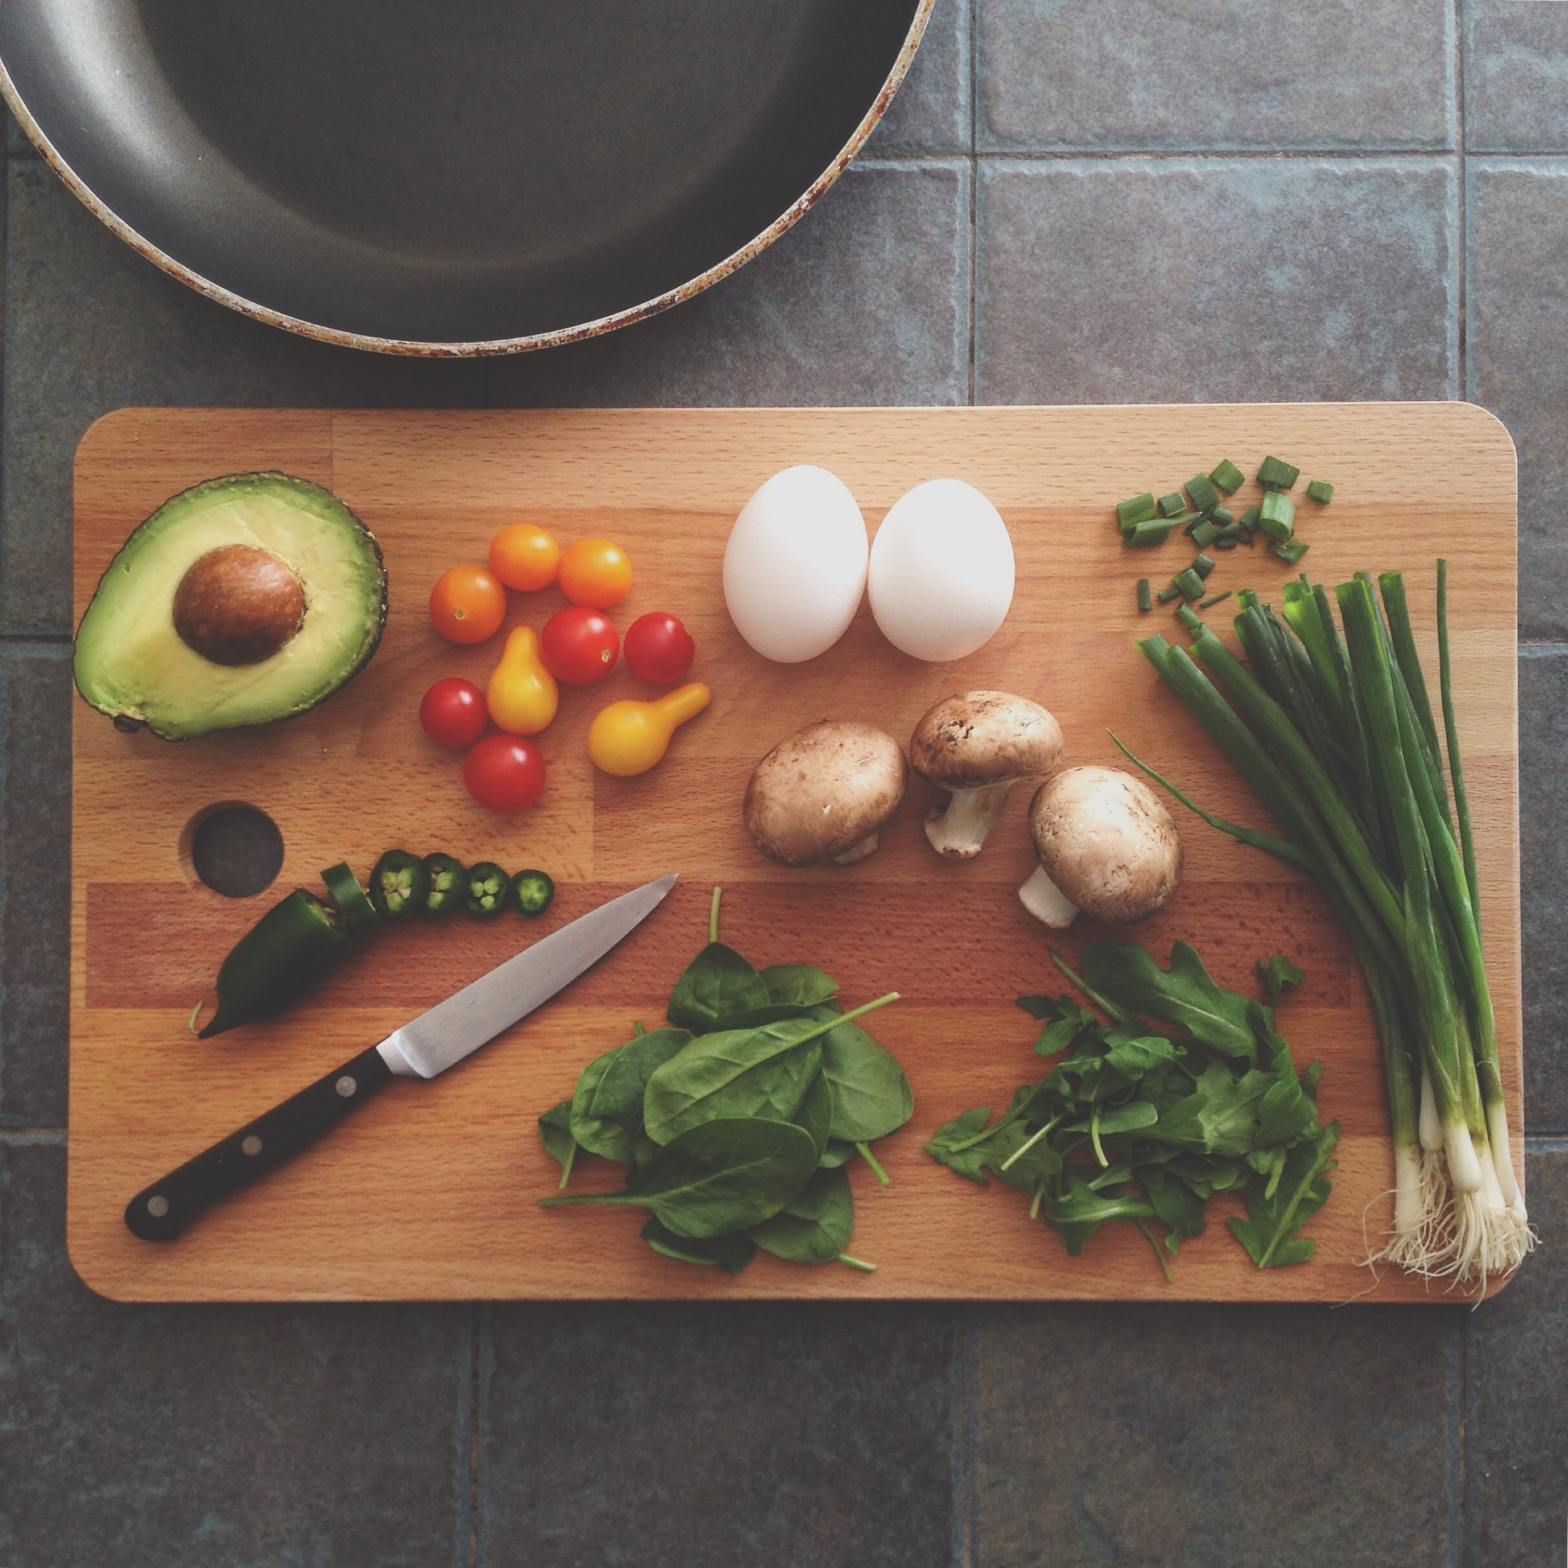 Cutting board with vegetables